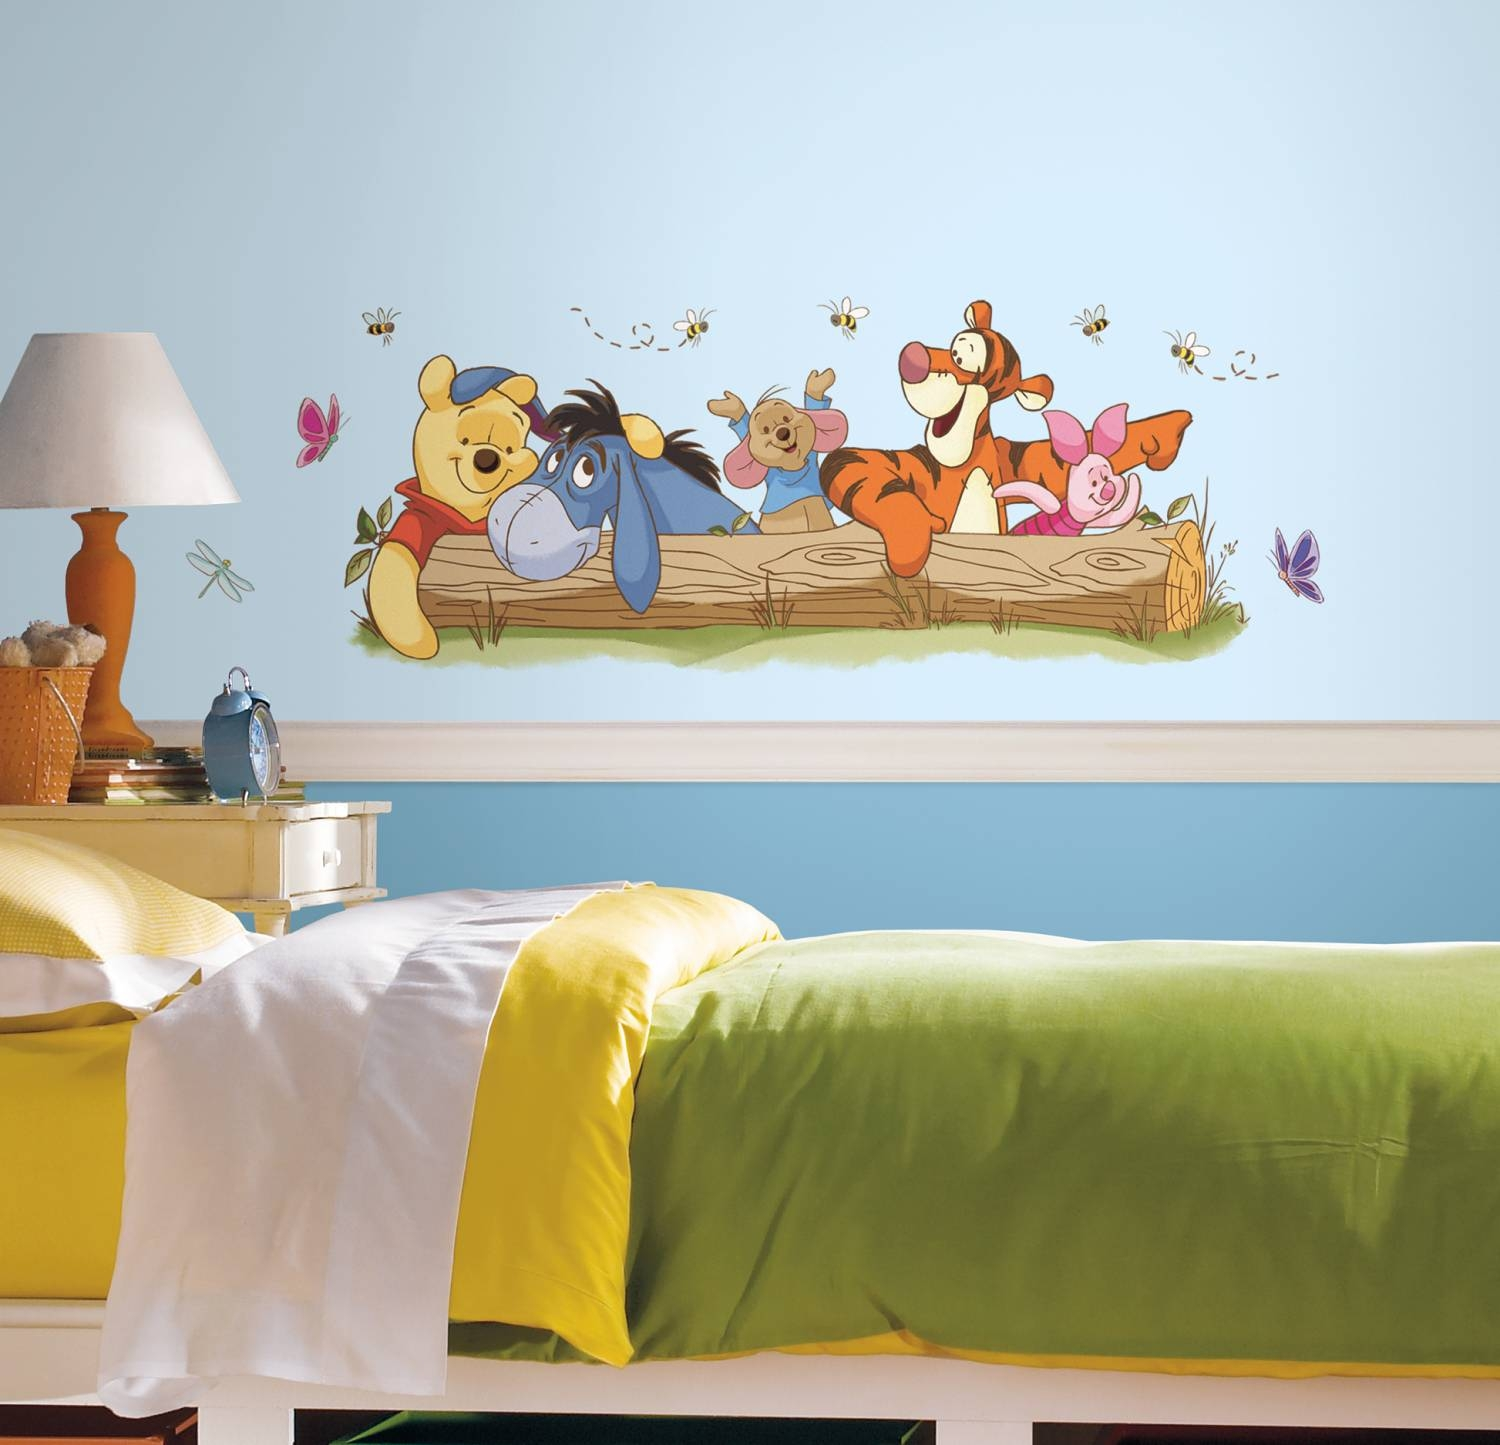 Rmk2553Gm Winnie The Pooh – Outdoor Fun Giant Wall Sticker Pertaining To Most Current Winnie The Pooh Wall Decor (Gallery 3 of 20)